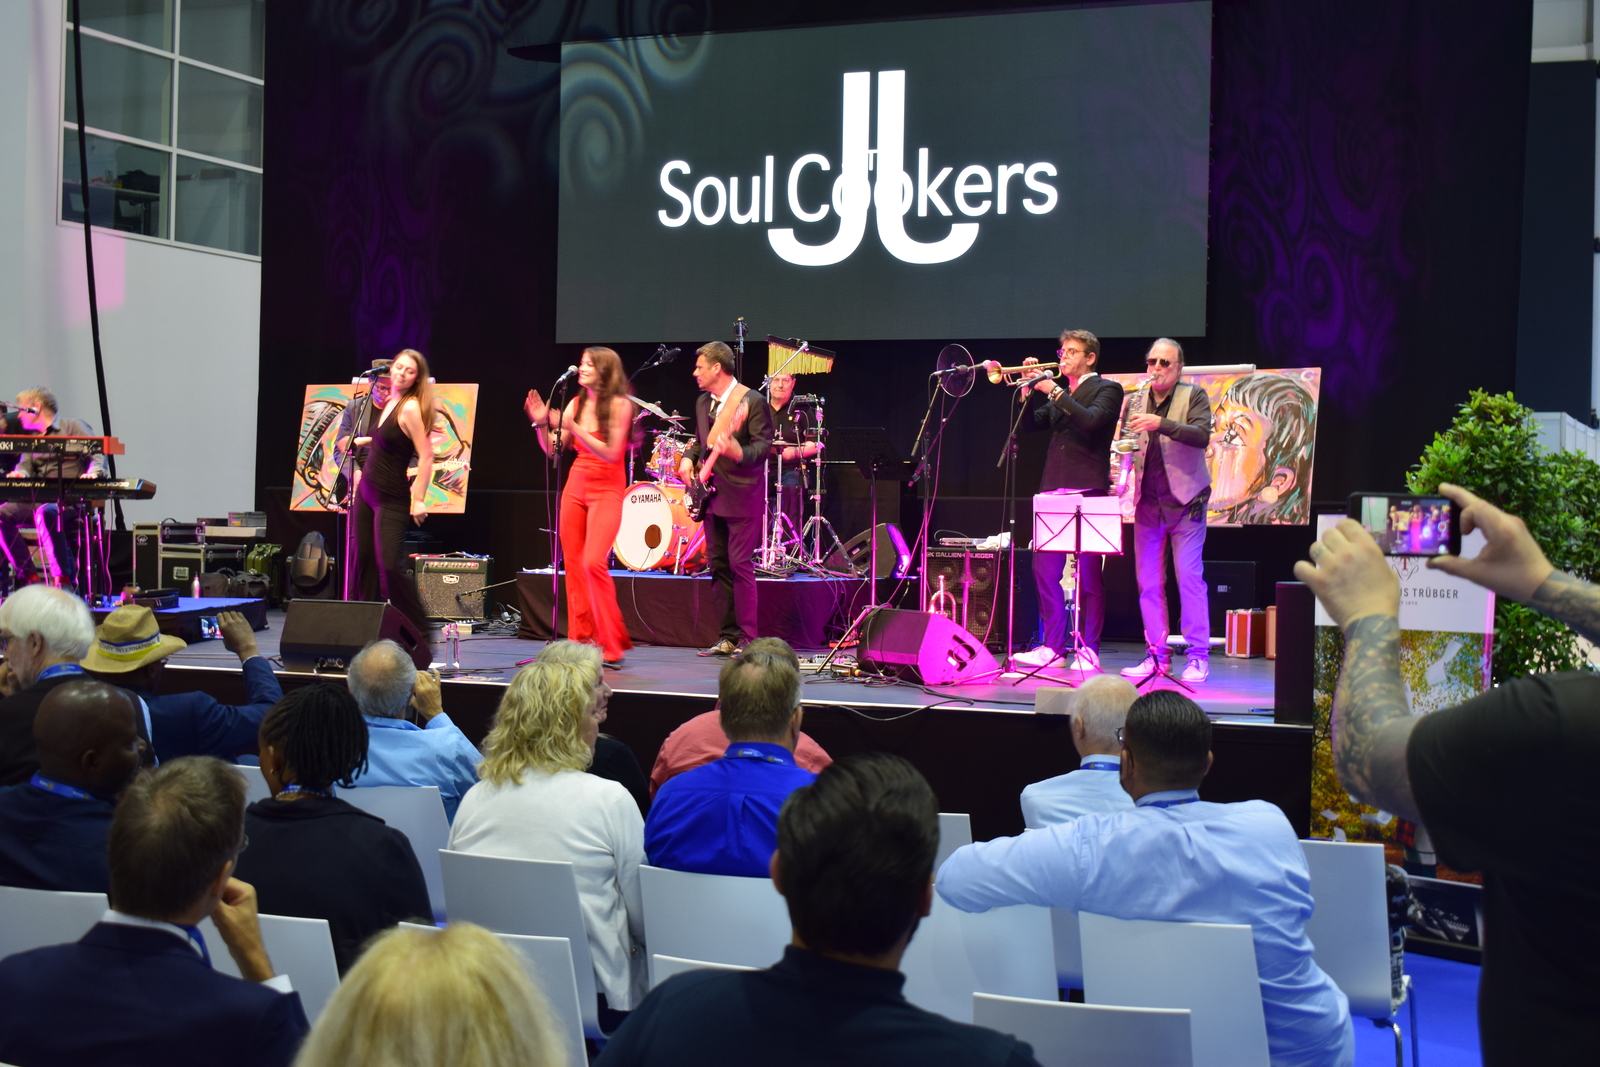 2019, hamburg, convention, musik, jj & the soul cookers